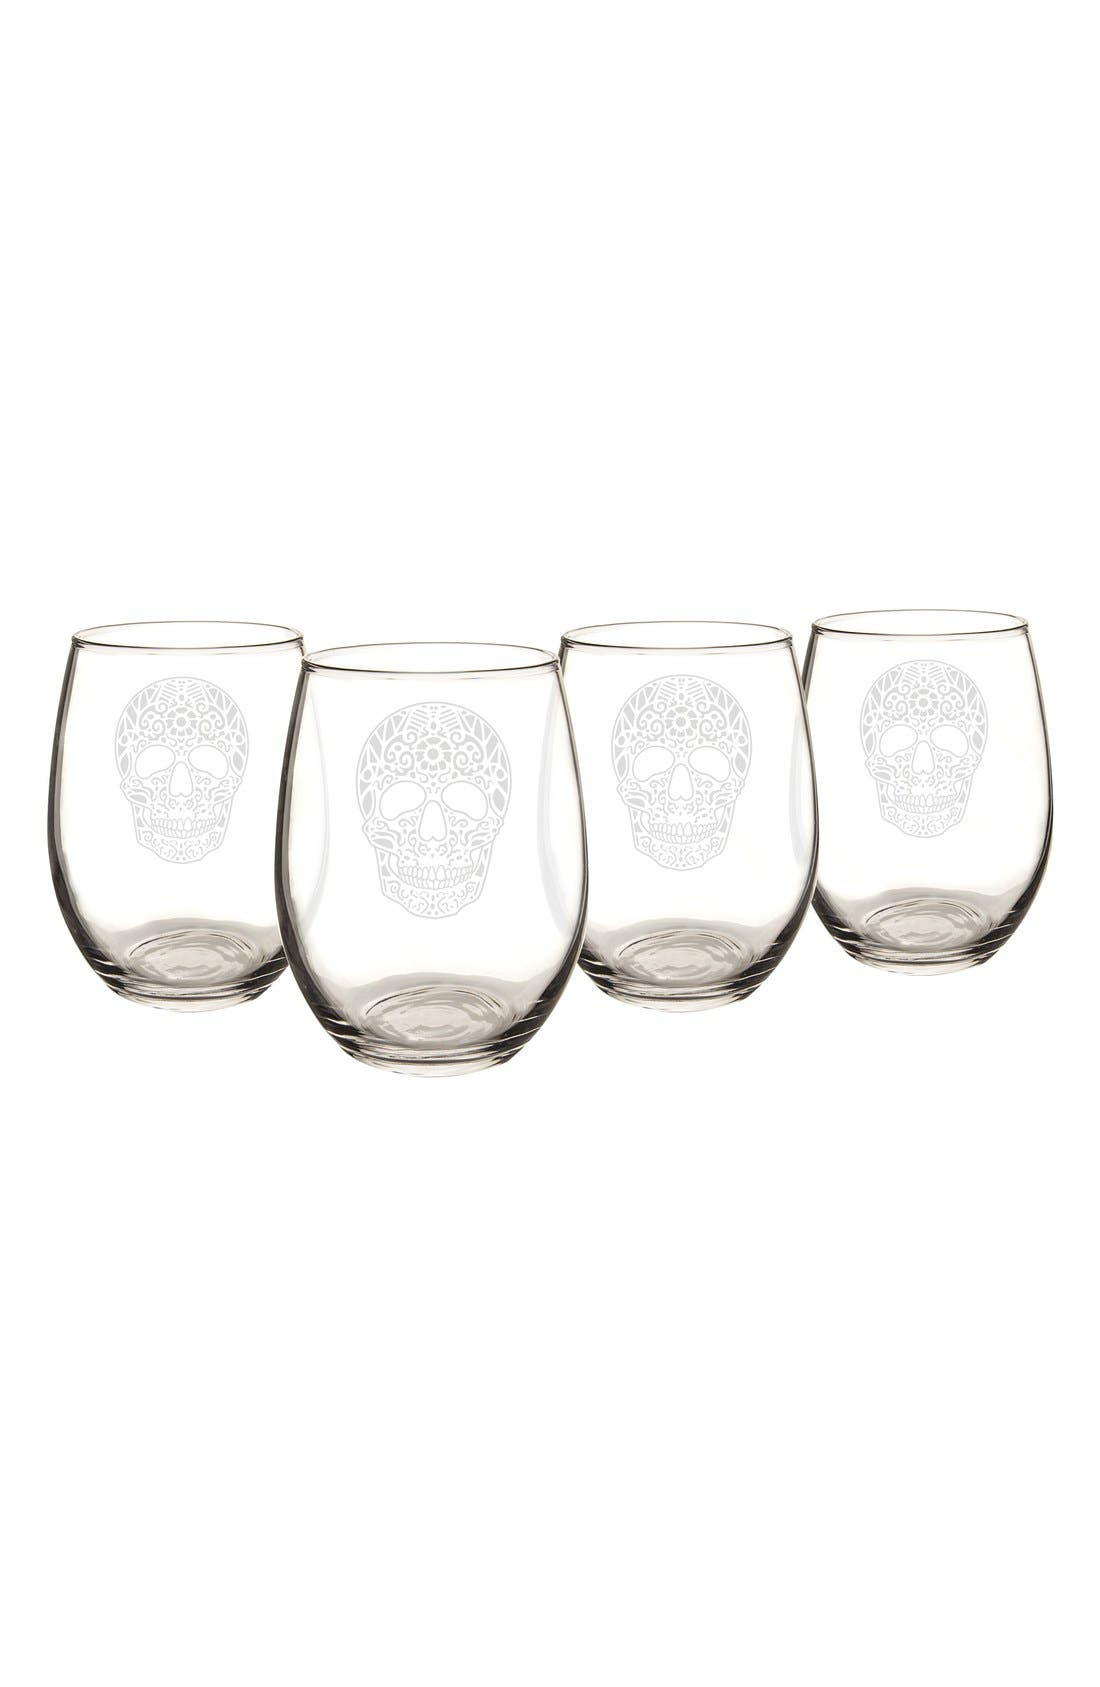 Cathy's Concepts Sugar Skulls Set of 4 Stemless Wine Glasses